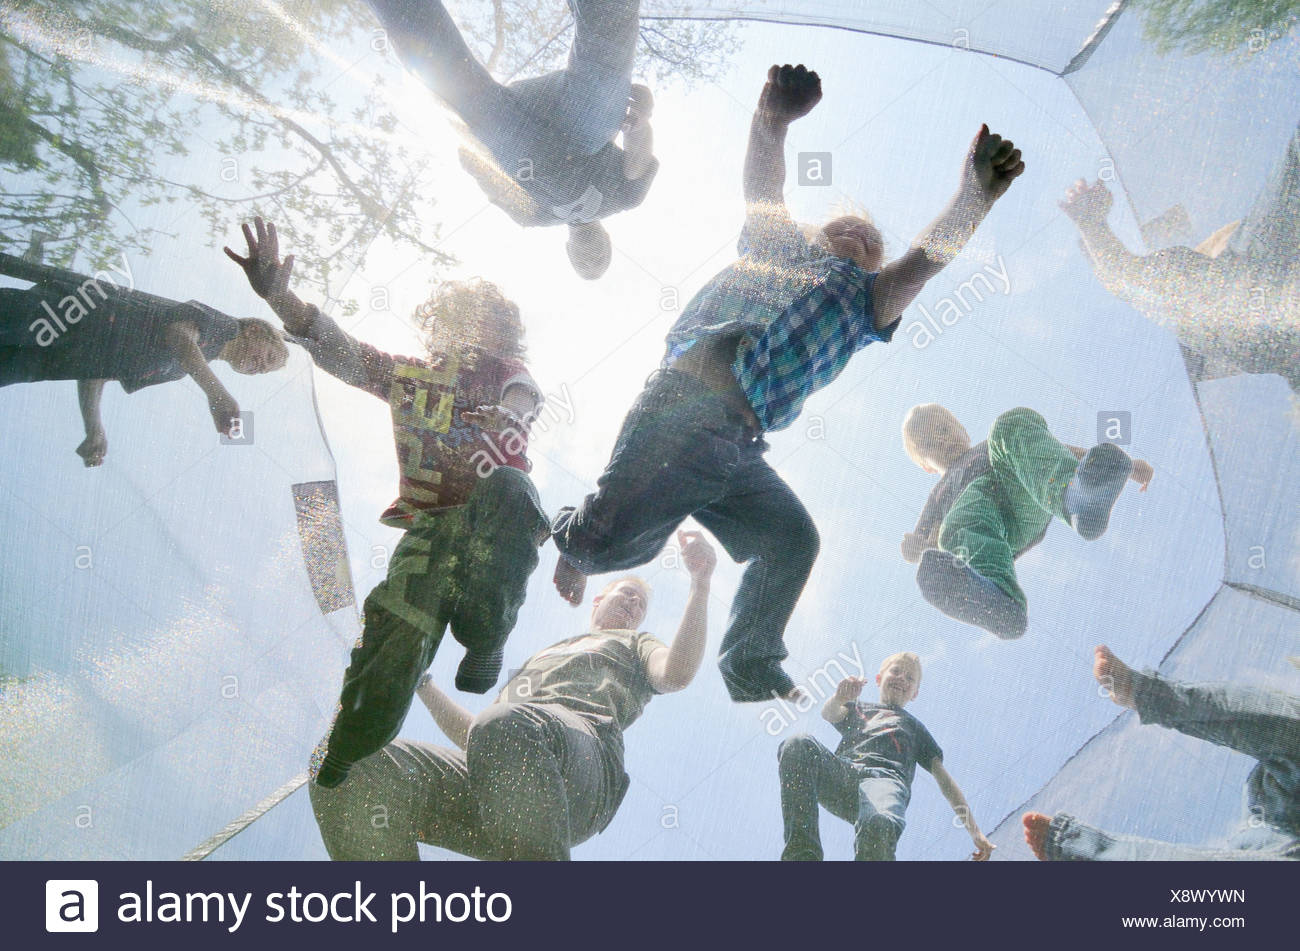 Mature men and boys jumping on trampoline, low angle view - Stock Image